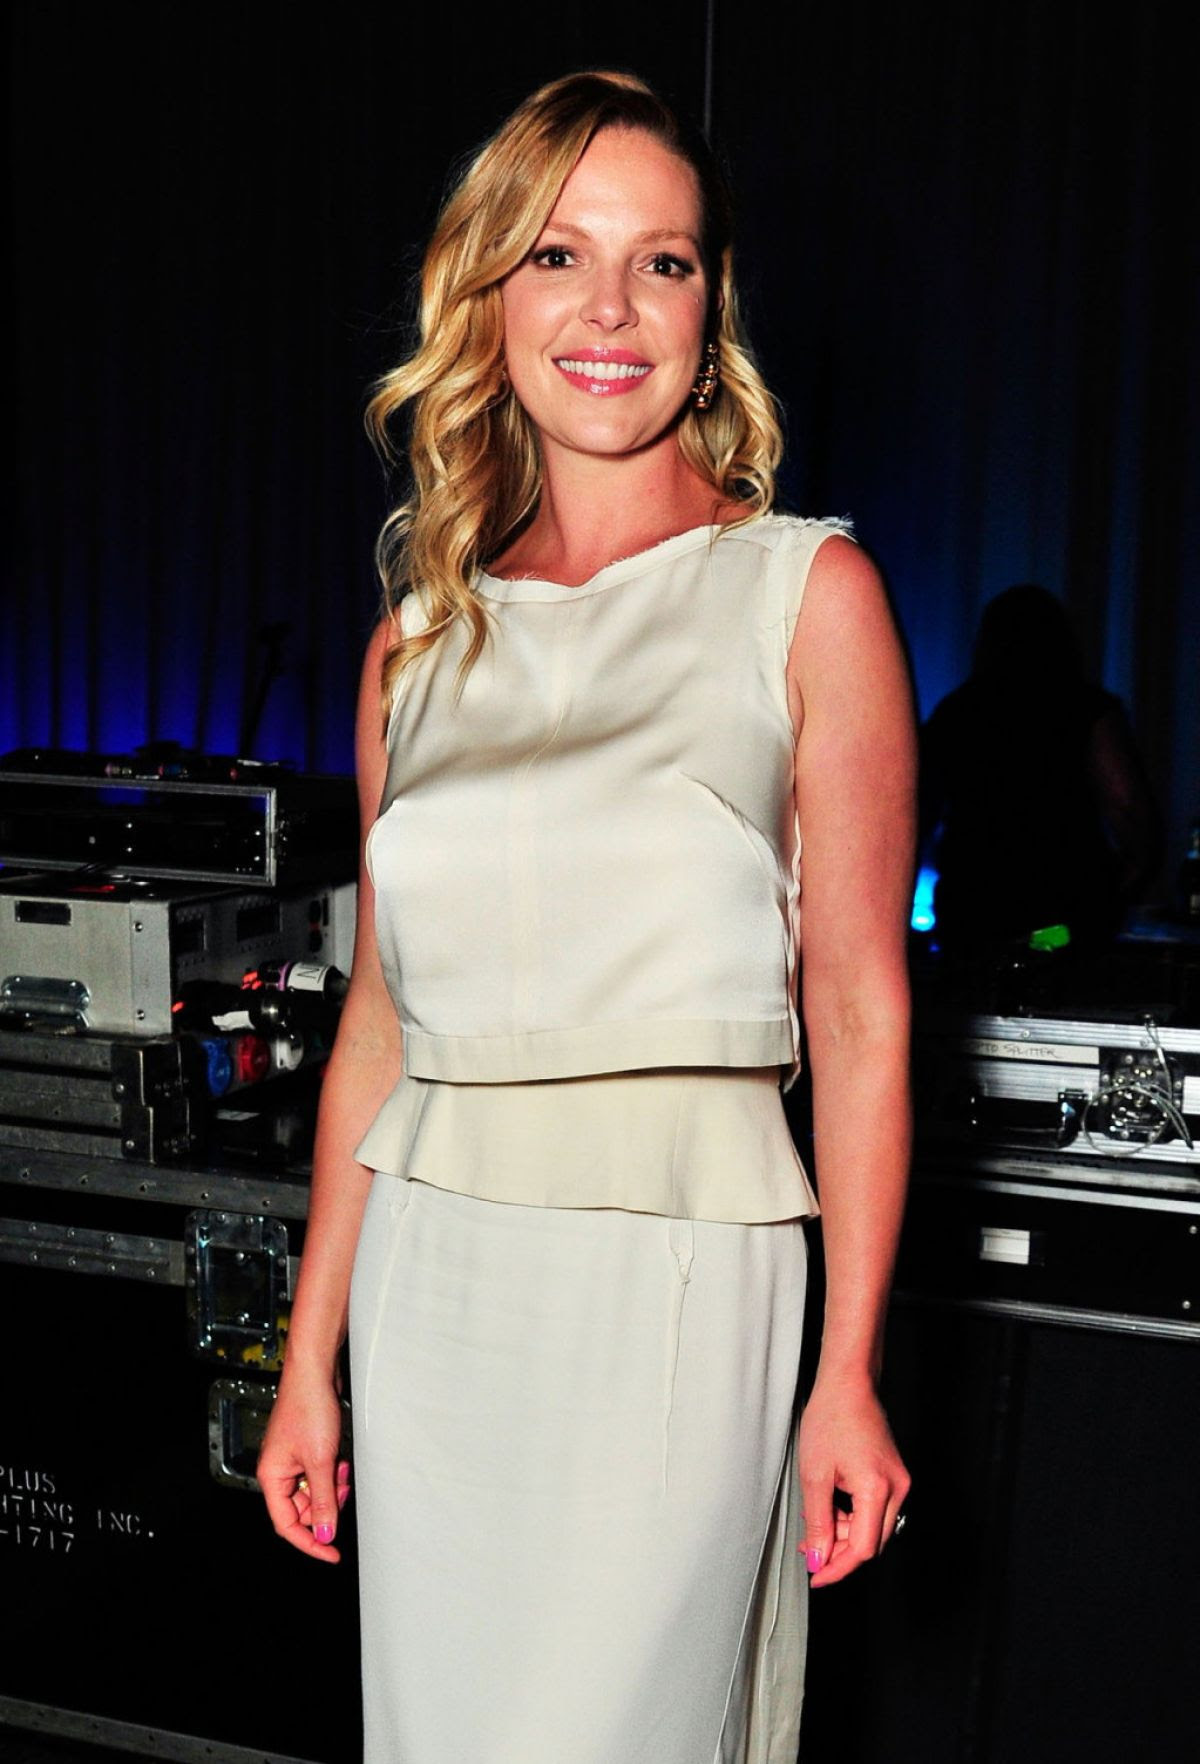 KATHERINE HEIGL at Petco Foundation Gala  in San Diego